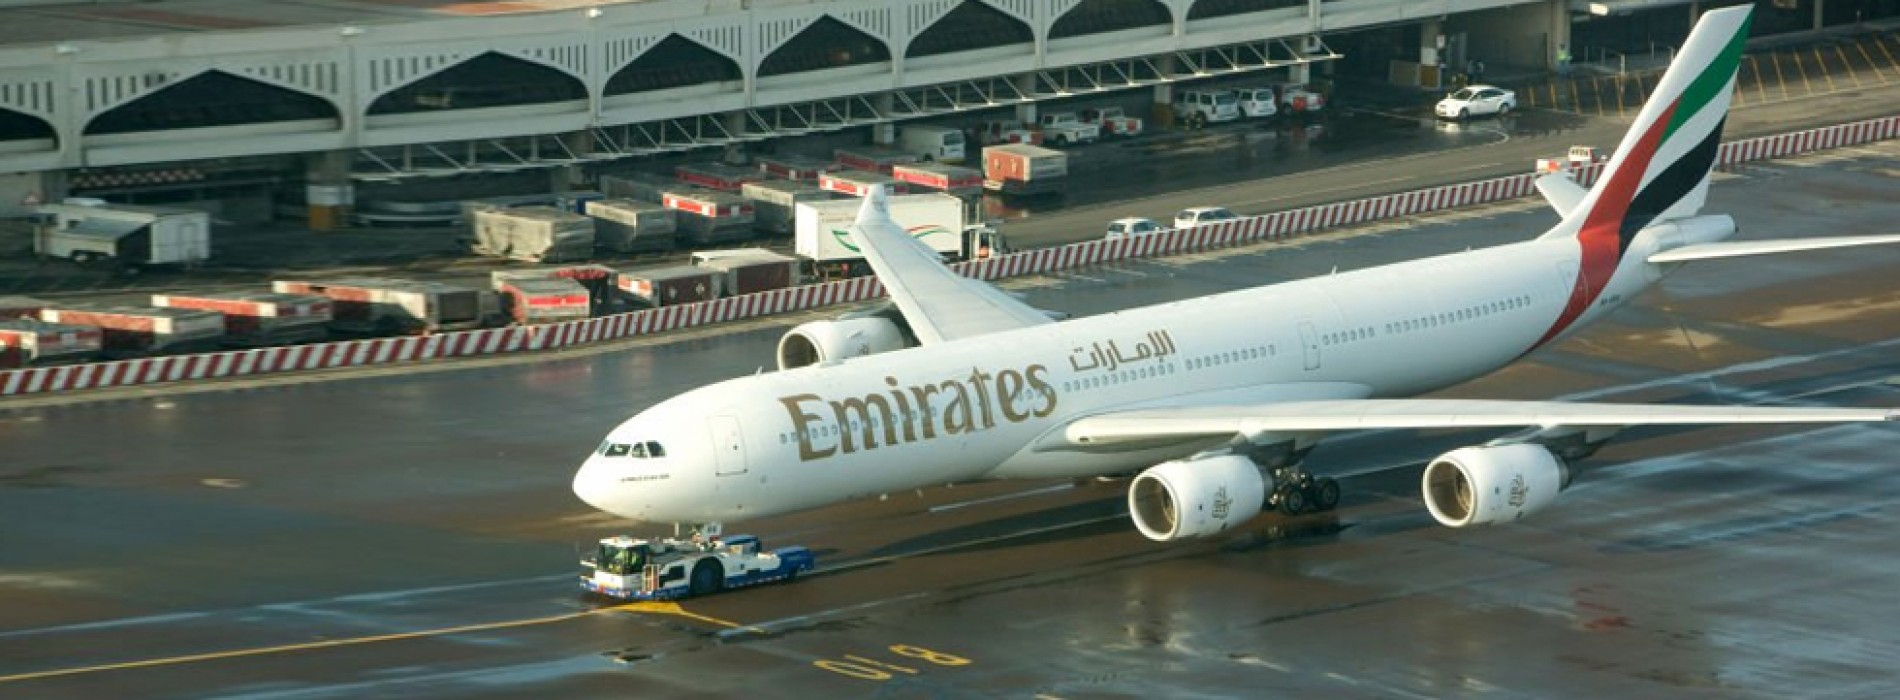 Emirates signs an MoU with Airbus for order of 36 A380s worth $16 bn